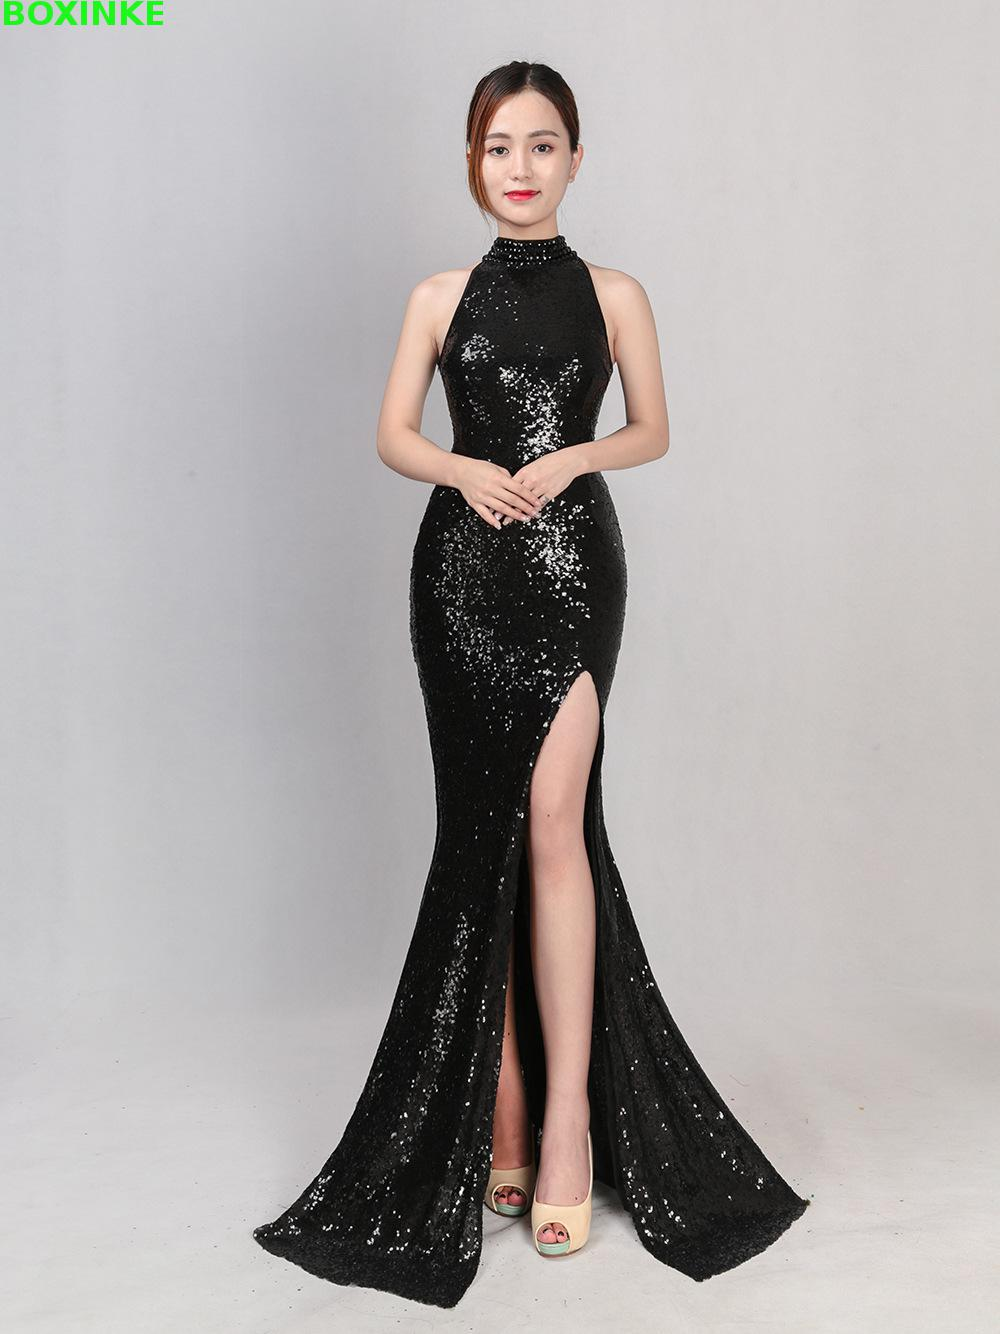 Plus Size Real Empire Summer Stand Sequined Dress 2018 New Split Long Neck Hanging Fish Party Sexy Sequin Slim Hosted Car Club